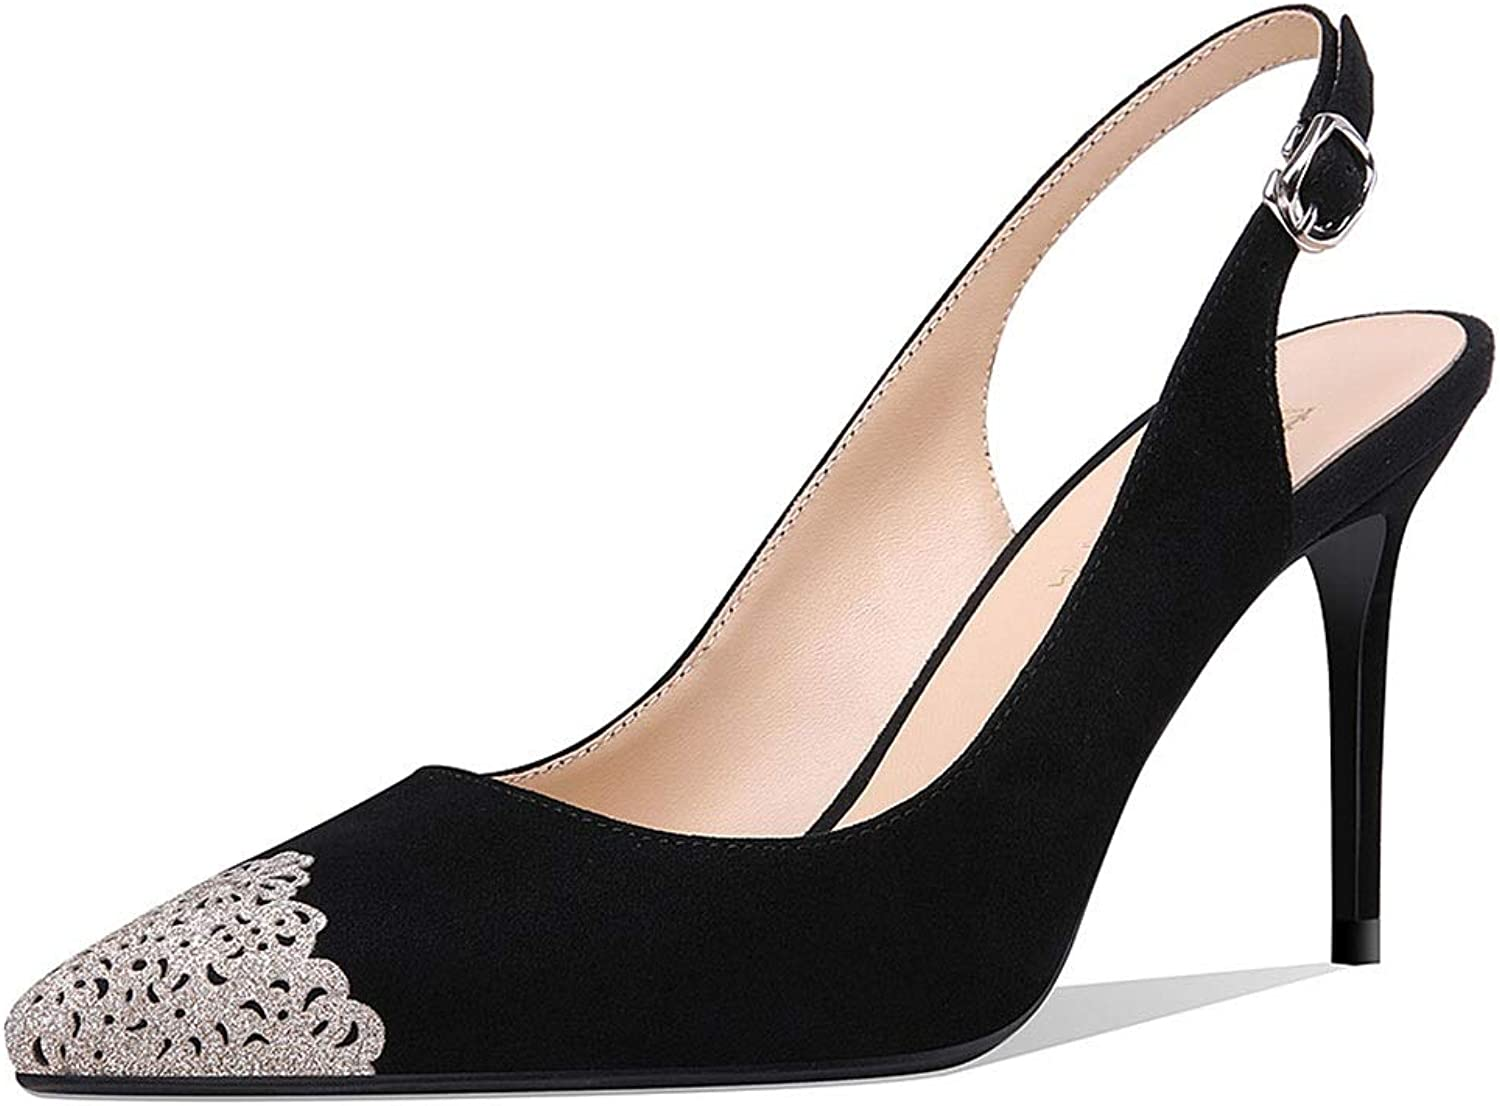 High Heels High Heels Ladies sandals Summer Pointed Stiletto shoes 8.5cm Matte Word with high Heels not Tired shoes Ladies sandals (color   Black, Size   39)